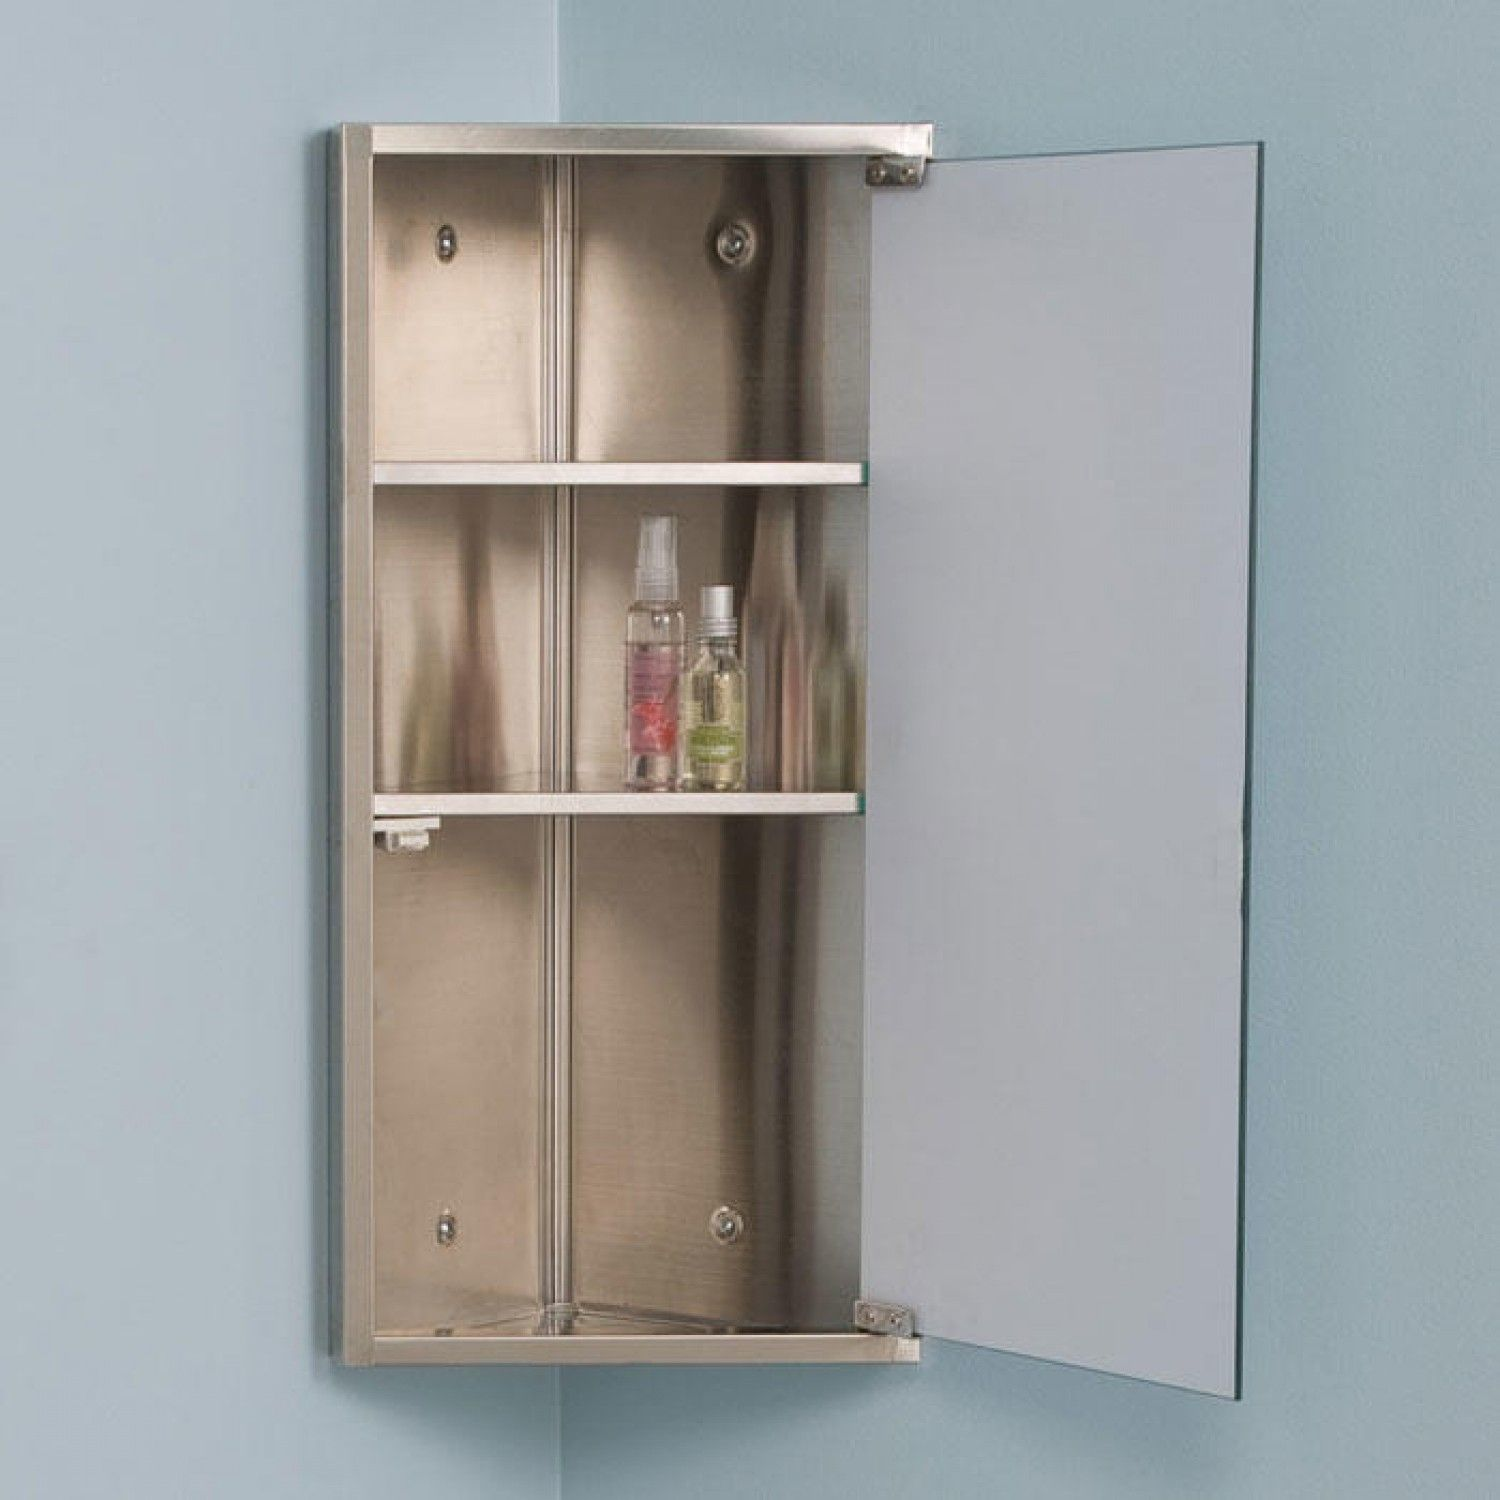 Kugler Stainless Steel Corner Medicine Cabinet With Mirror